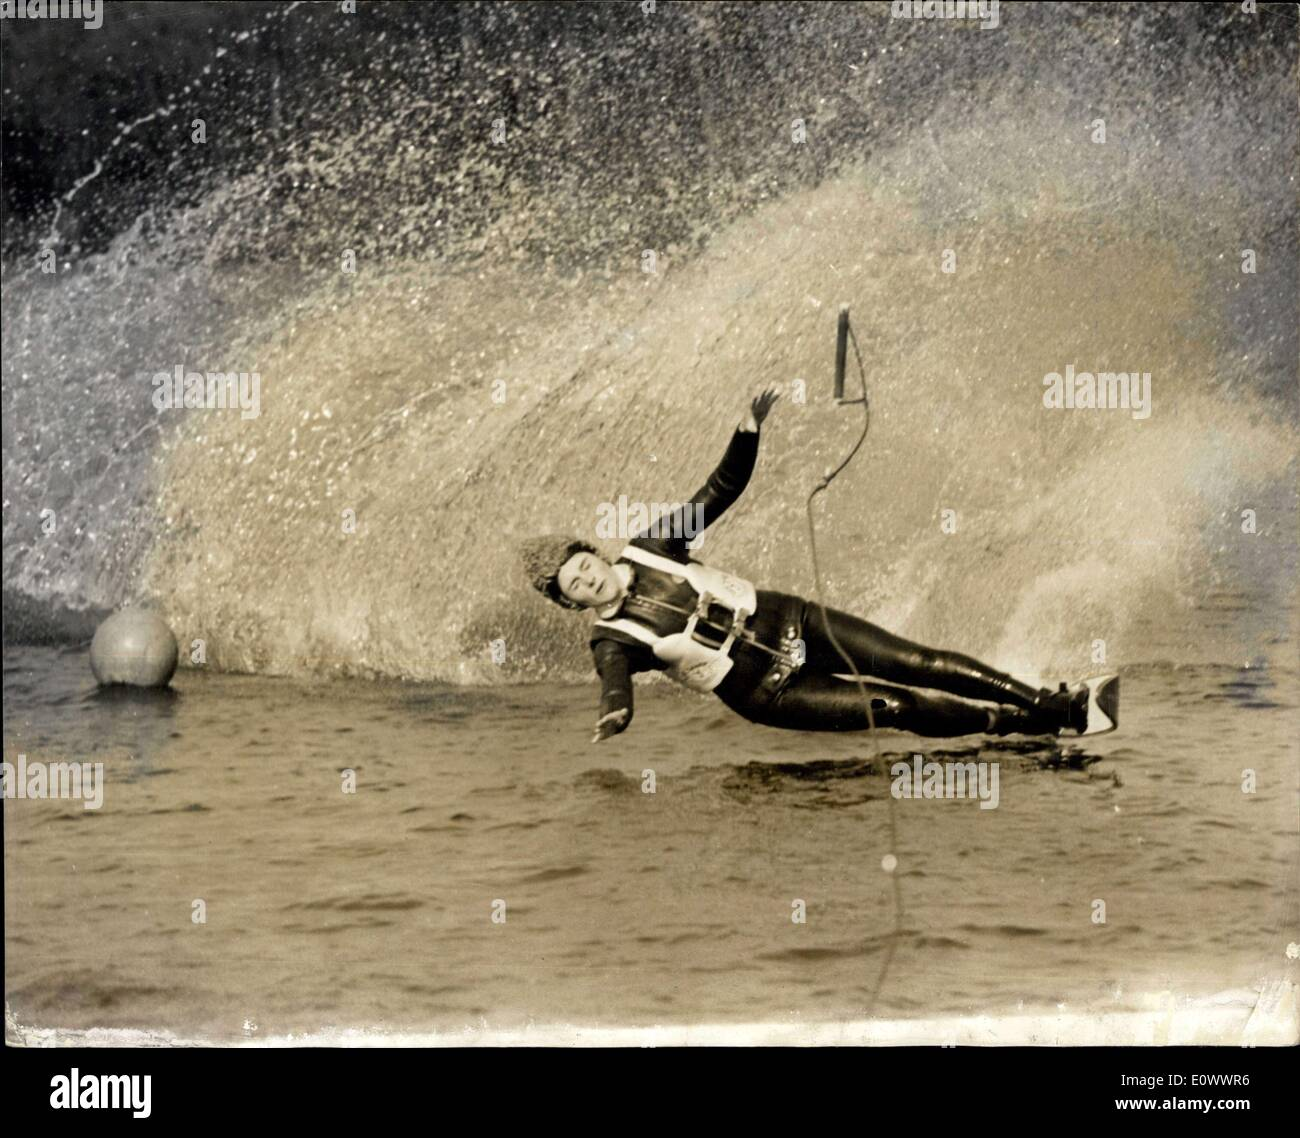 May 13, 1964 - Said to be Britain's best prospect ever for water skiing, in spite of the climatic difficulties which make all year round training difficult, is 17 year old Jeannete Stuart Wood, a schoolgirl from Headington, Oxon, who is Bristish overall ladies champion, and holder of the European Slalom and Jumping Champion, the first British skier to win two tiles. She has jumped 75-80 feet, and has reached a top slalom speed of 34 mph, and is expected to reach 38 mph this season - Stock Image